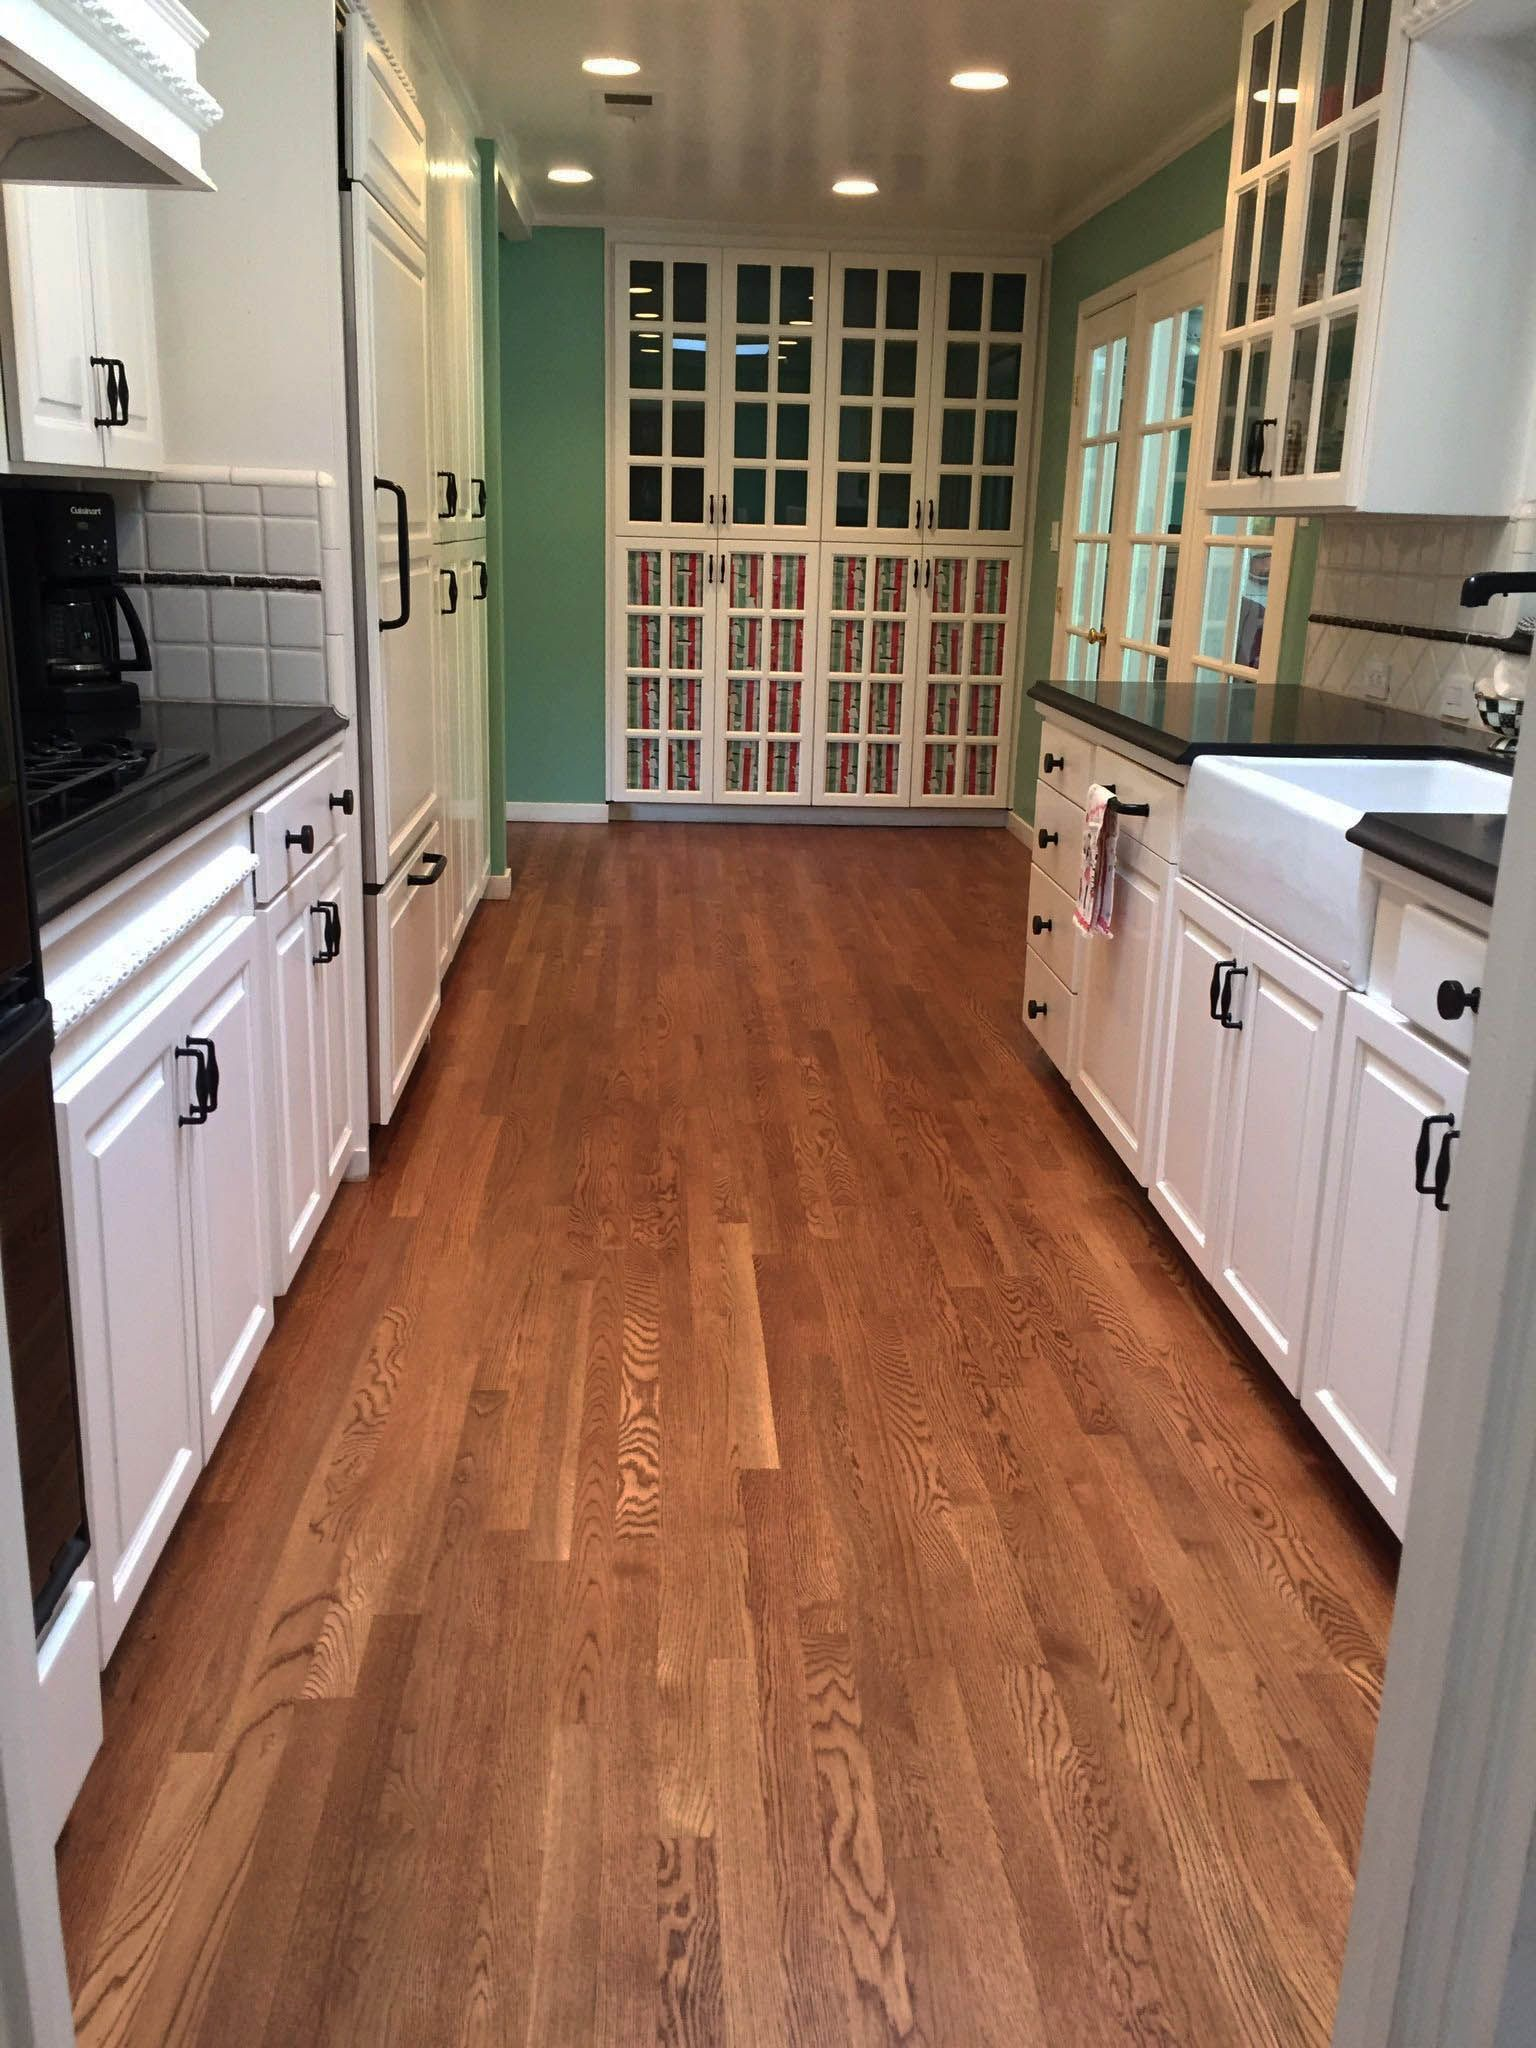 Latest White Oak Flooring Cost Per Square Foot Only On Smarthomefi Com White Oak Floors White Oak Flooring Bedroom Flooring